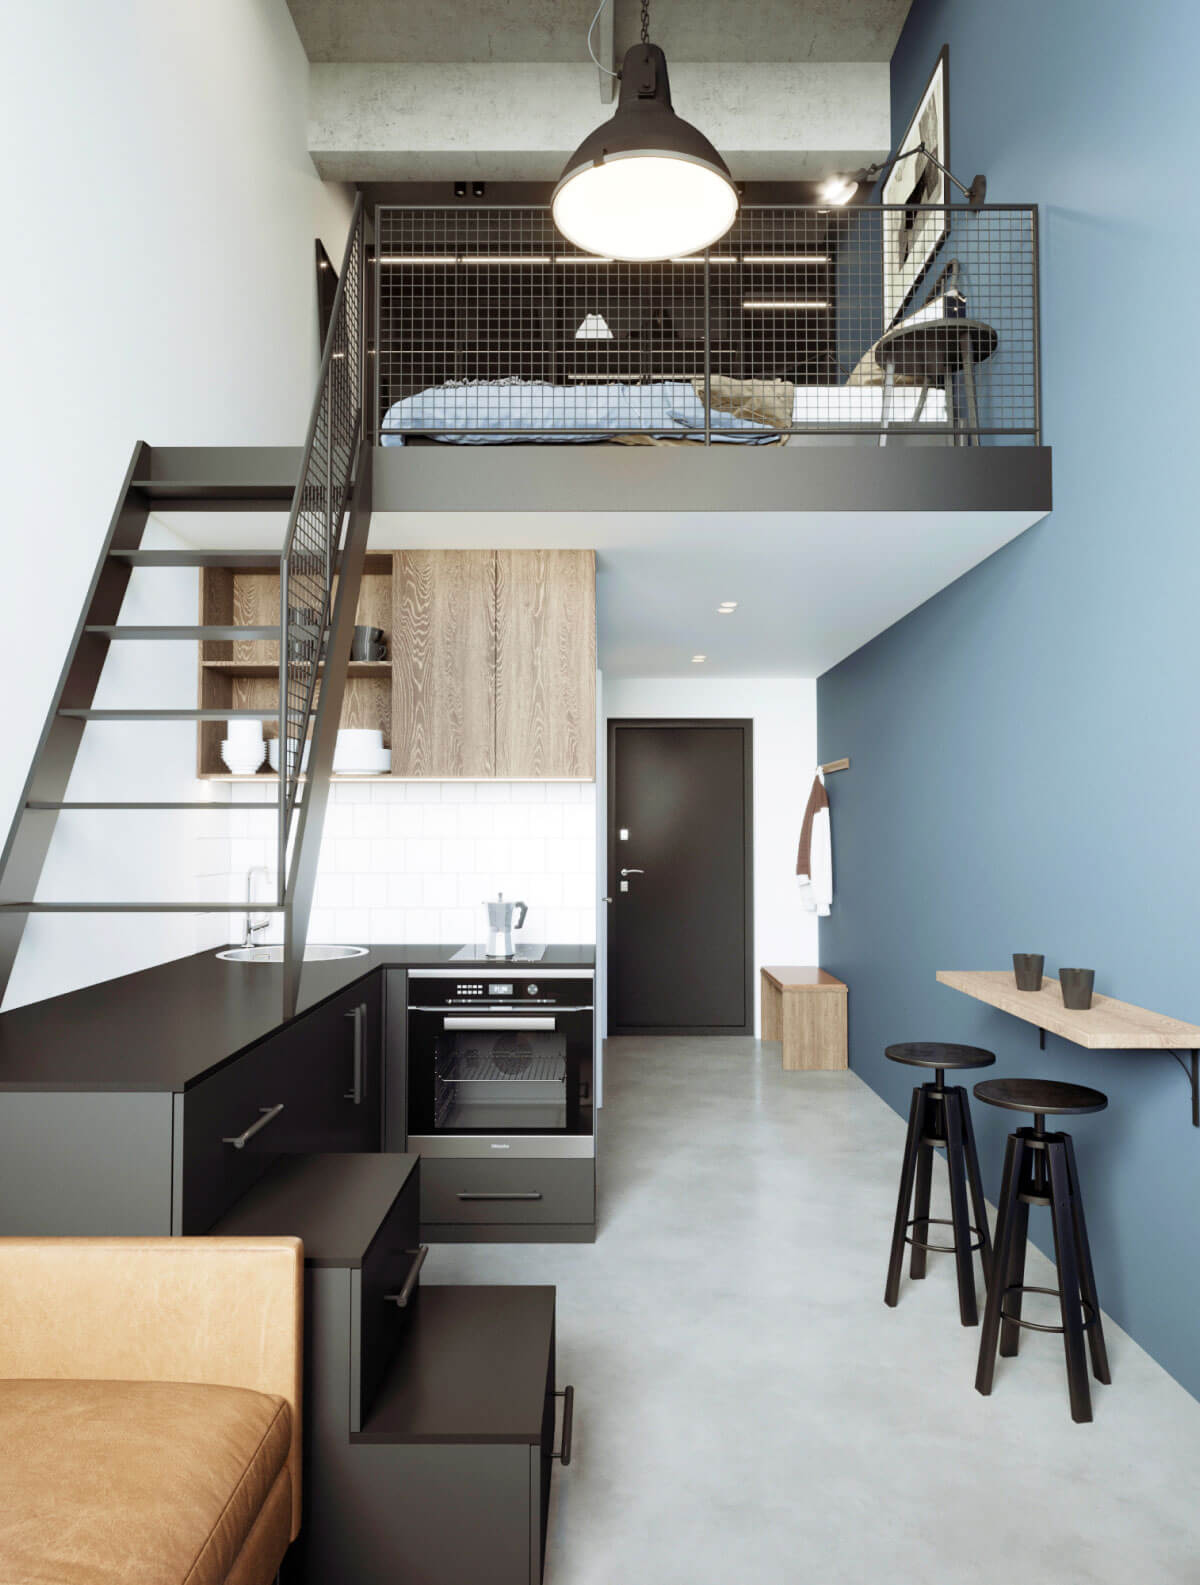 Urban style loft interior kitchen